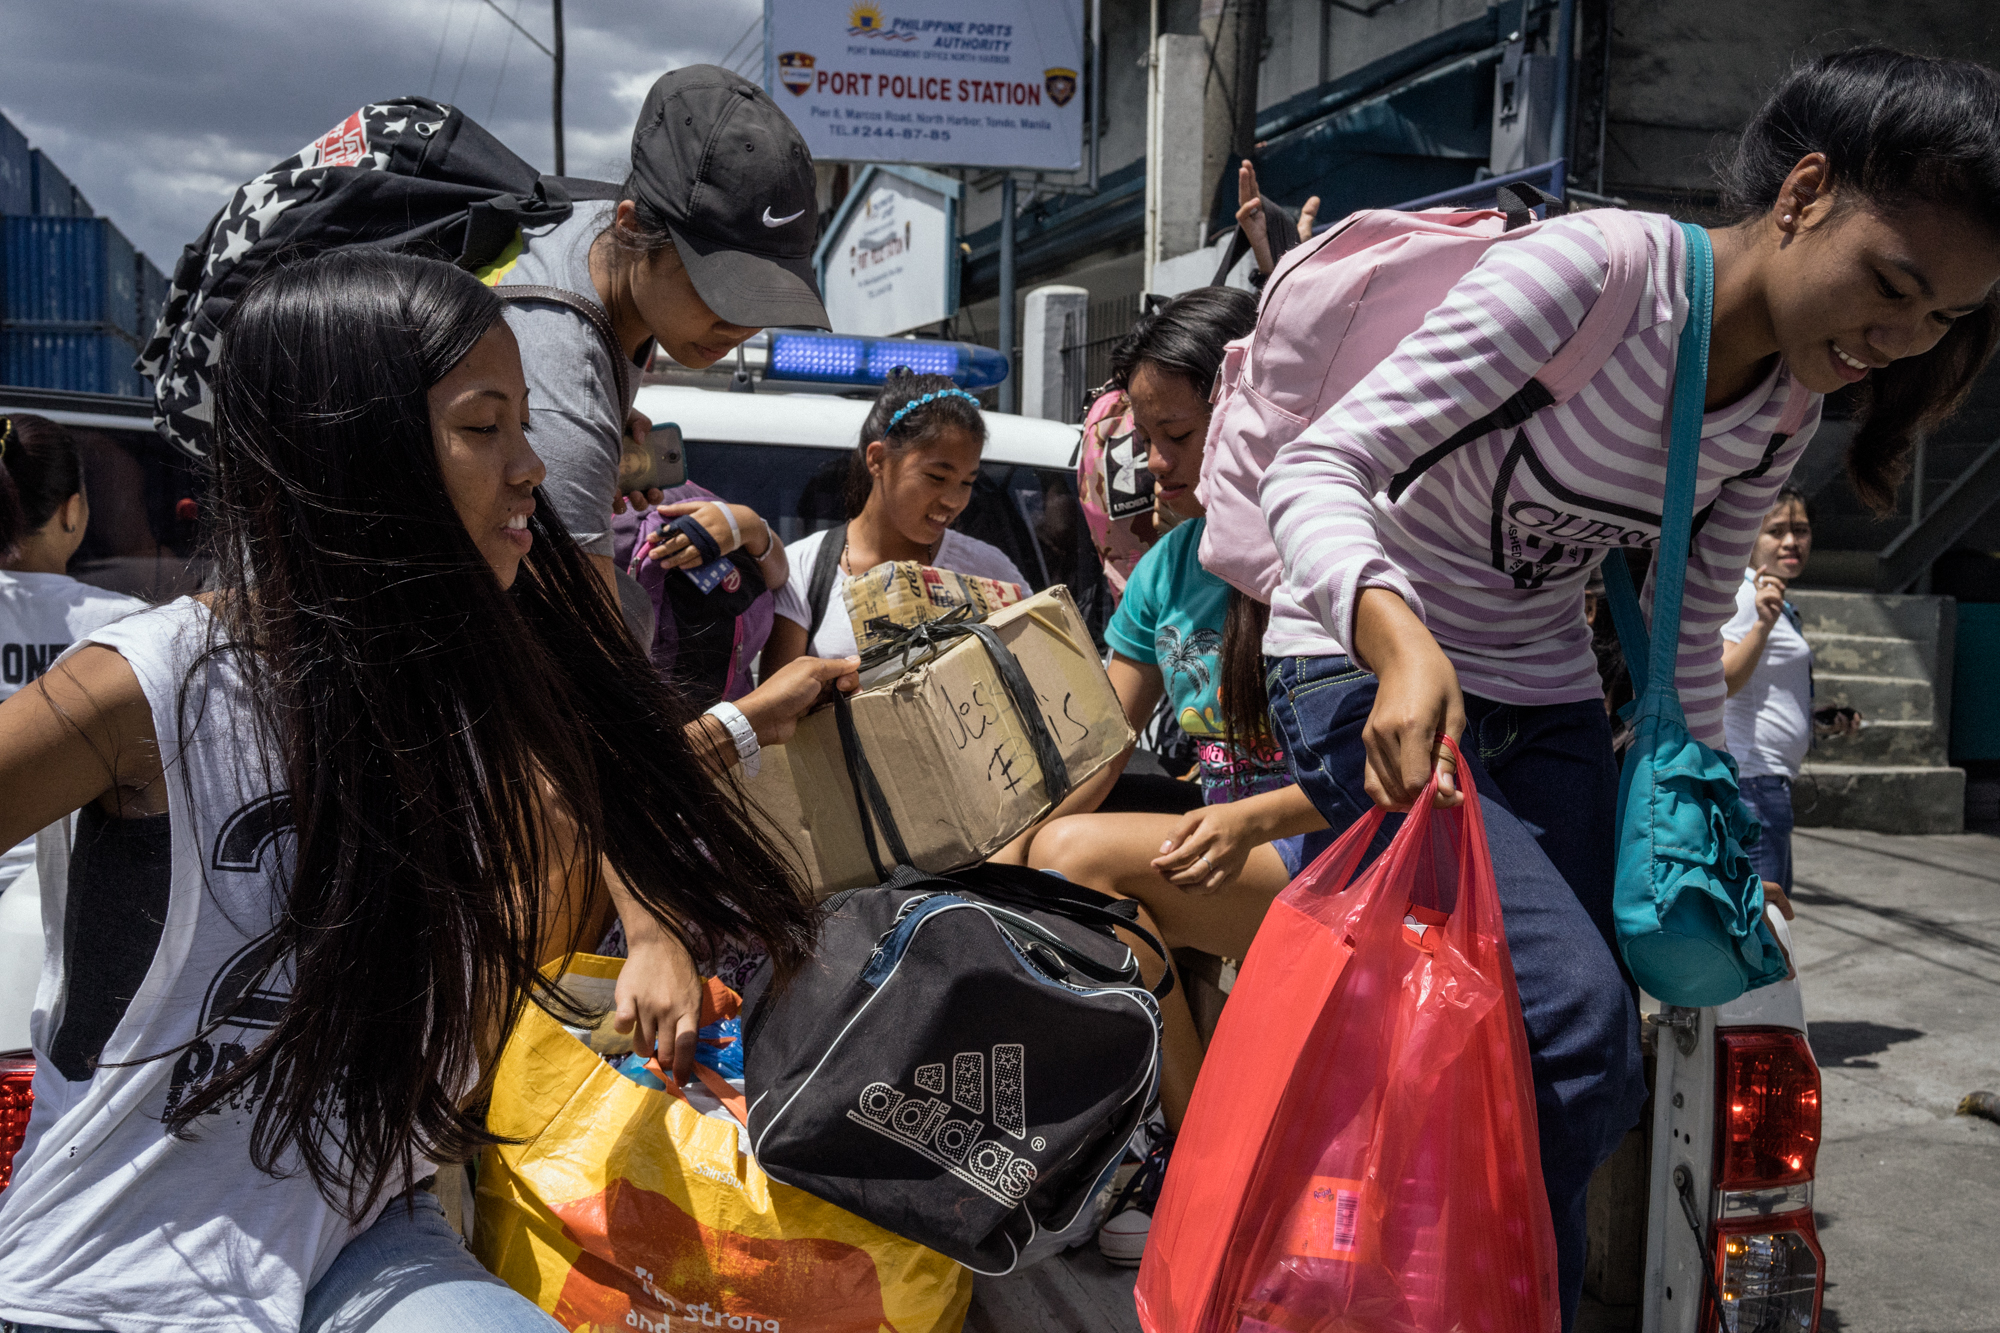 Intercepted minors go to the port police station. In an effort to combat human trafficking, the task force against trafficking takes unaccompanied minors and double checks to see if they exhibit signs of having been trafficked into the city.